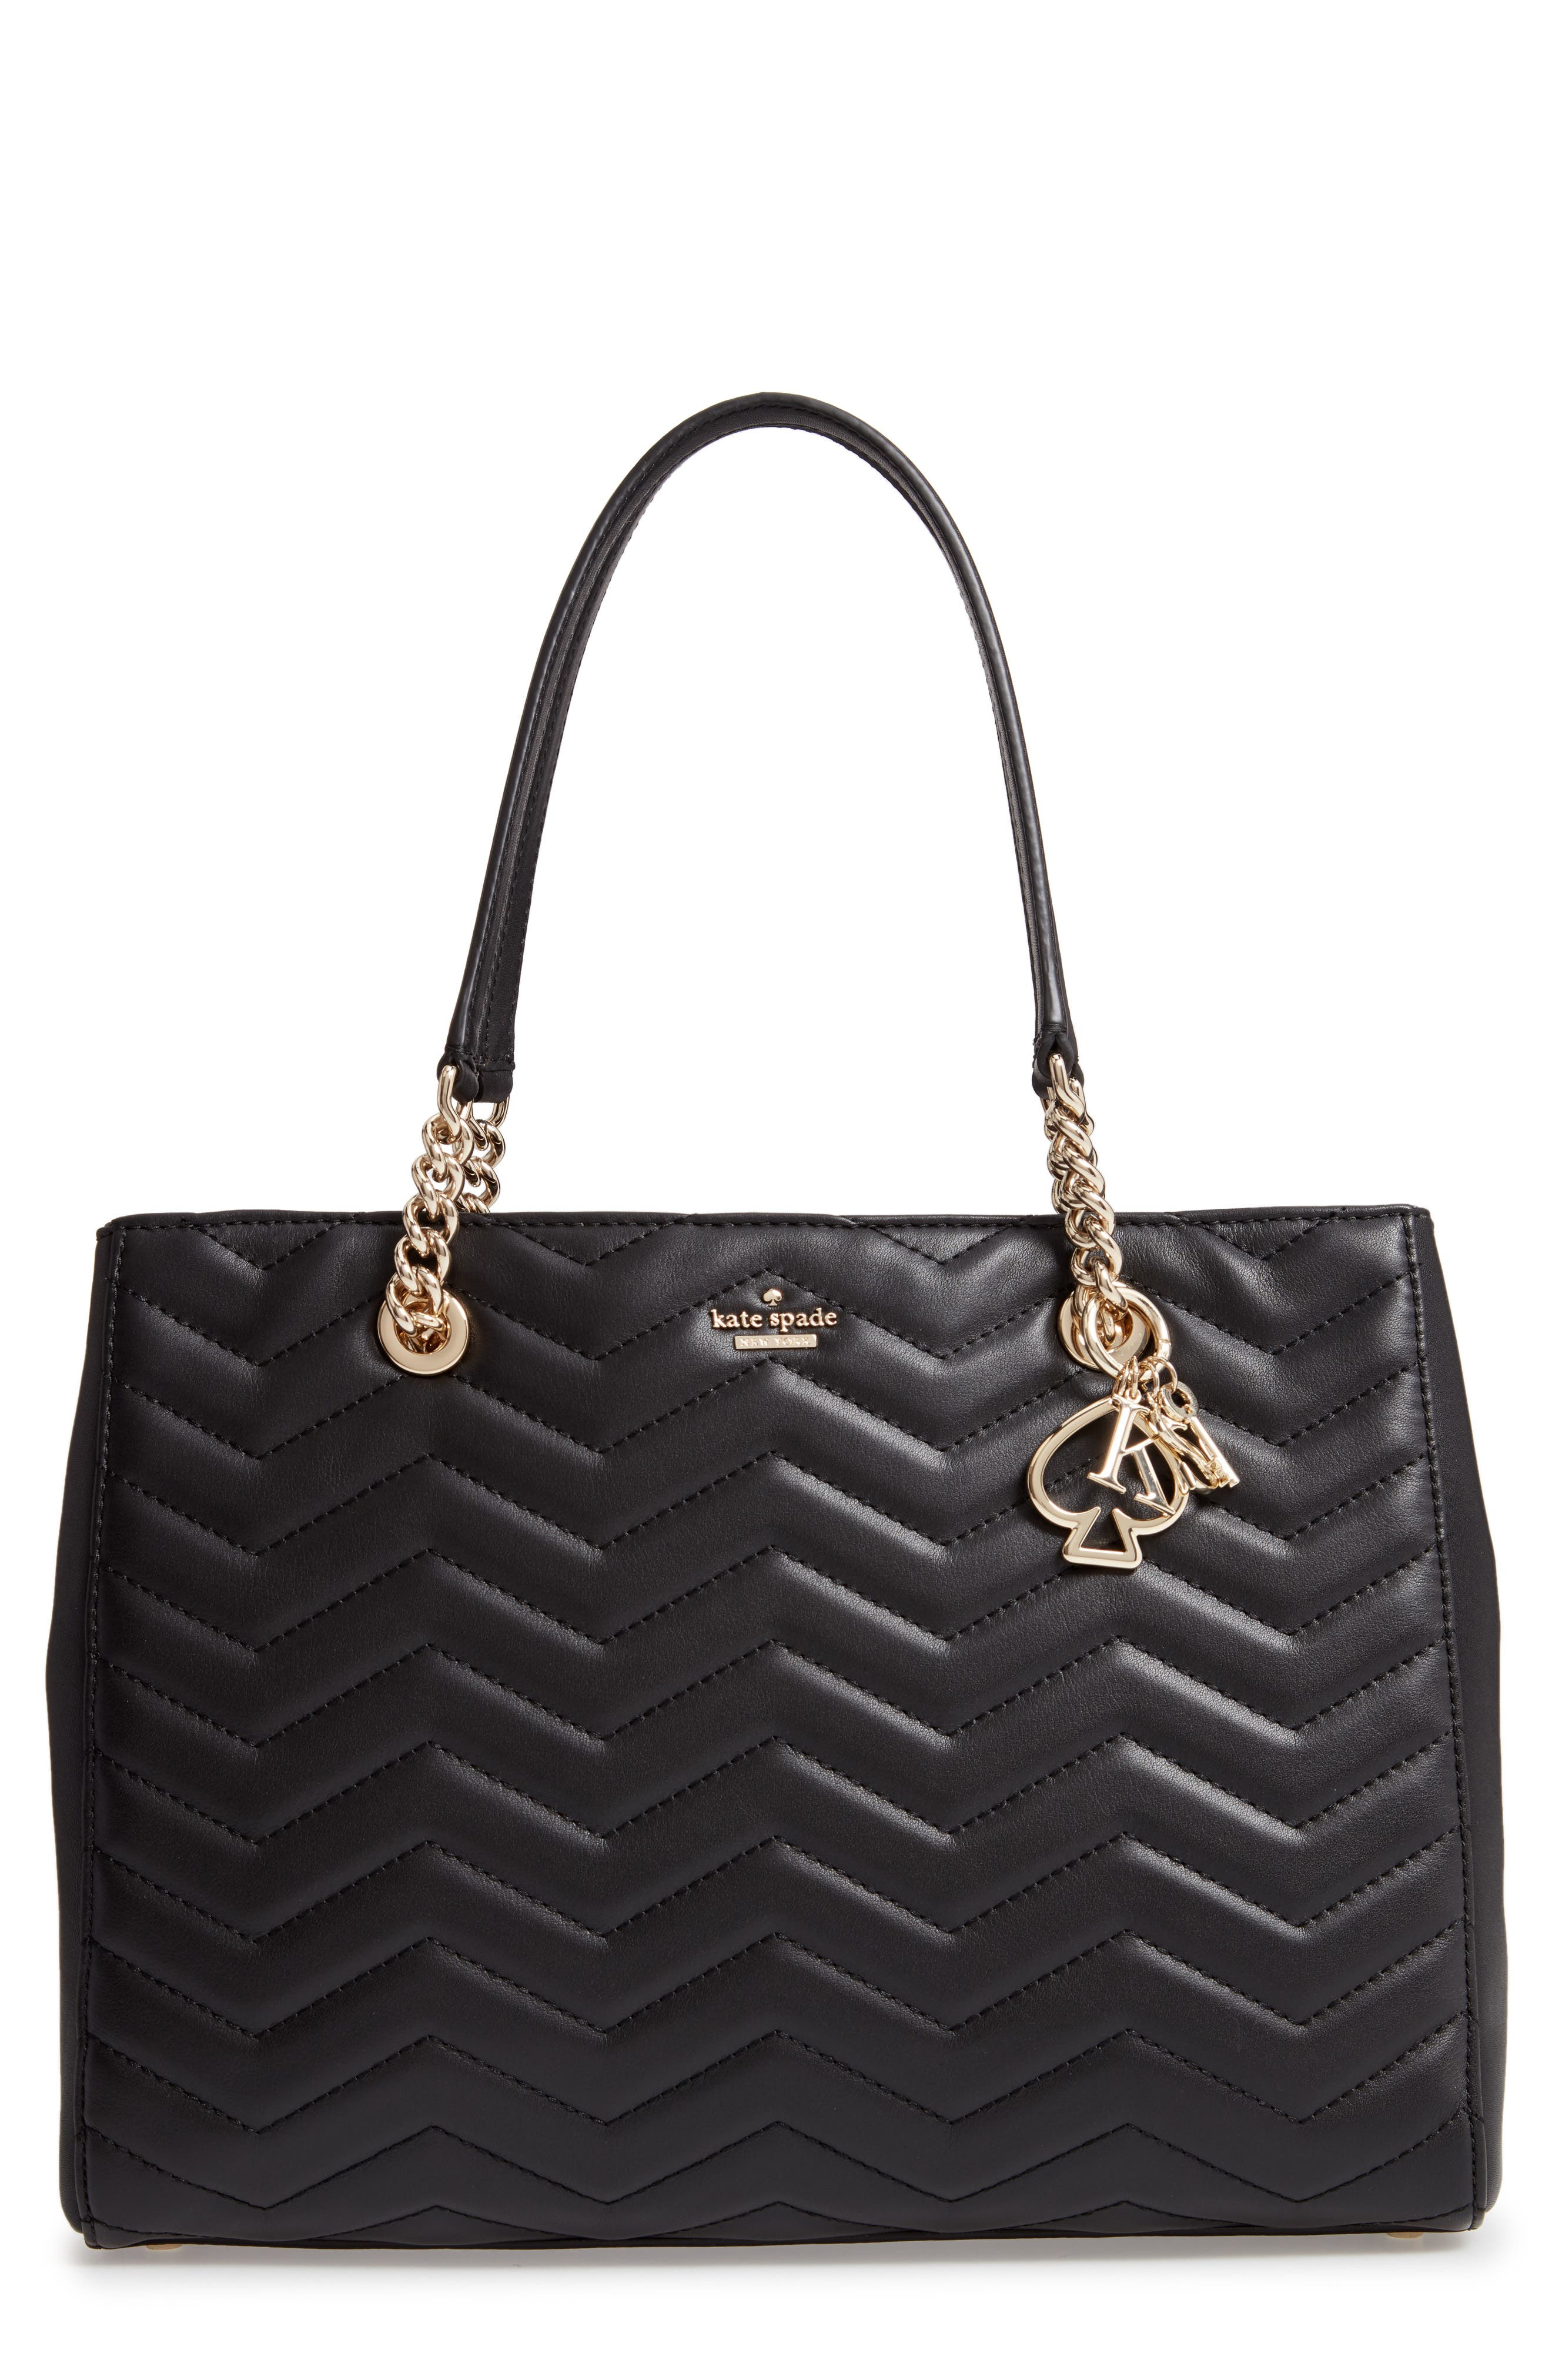 reese park courtnee leather tote,                             Main thumbnail 1, color,                             BLACK